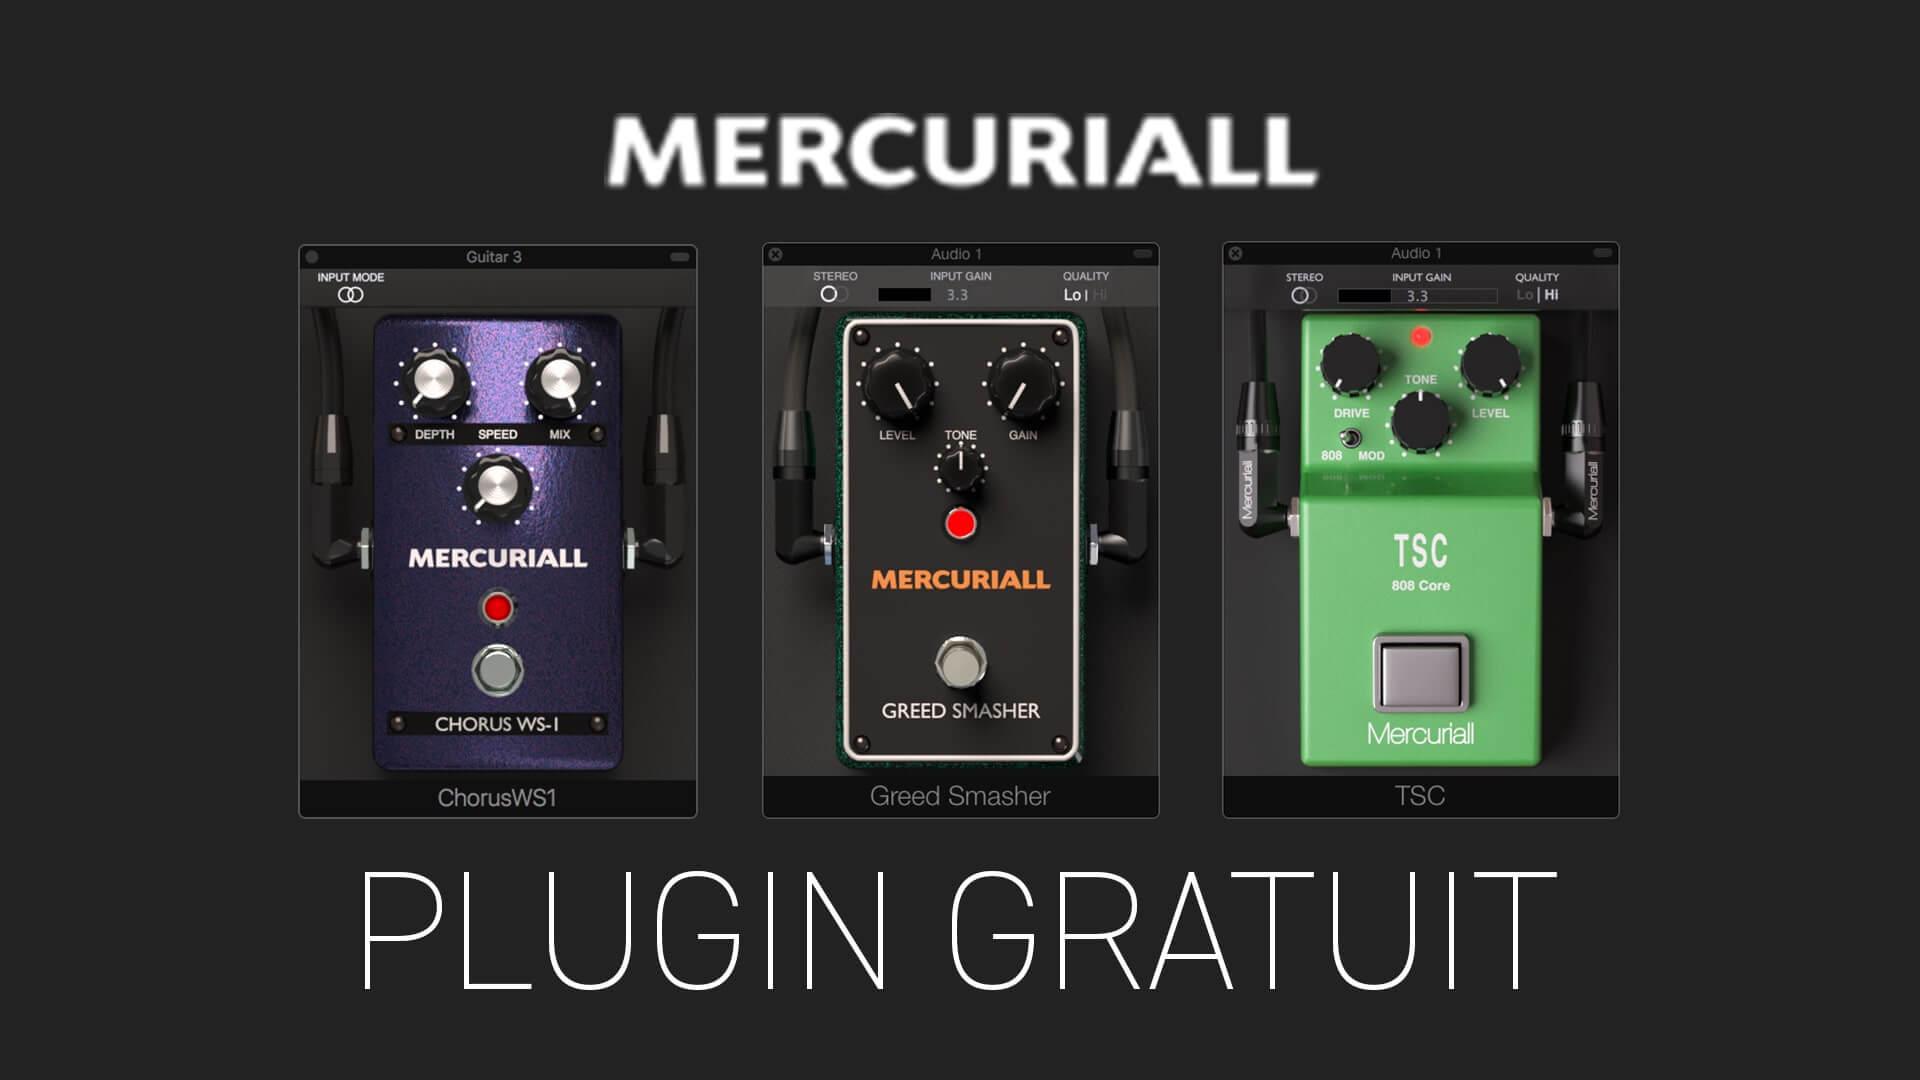 Chorus WS-1, Greed Smasher et TSC 808 Core de MERCURIALL Plugin Gratuit